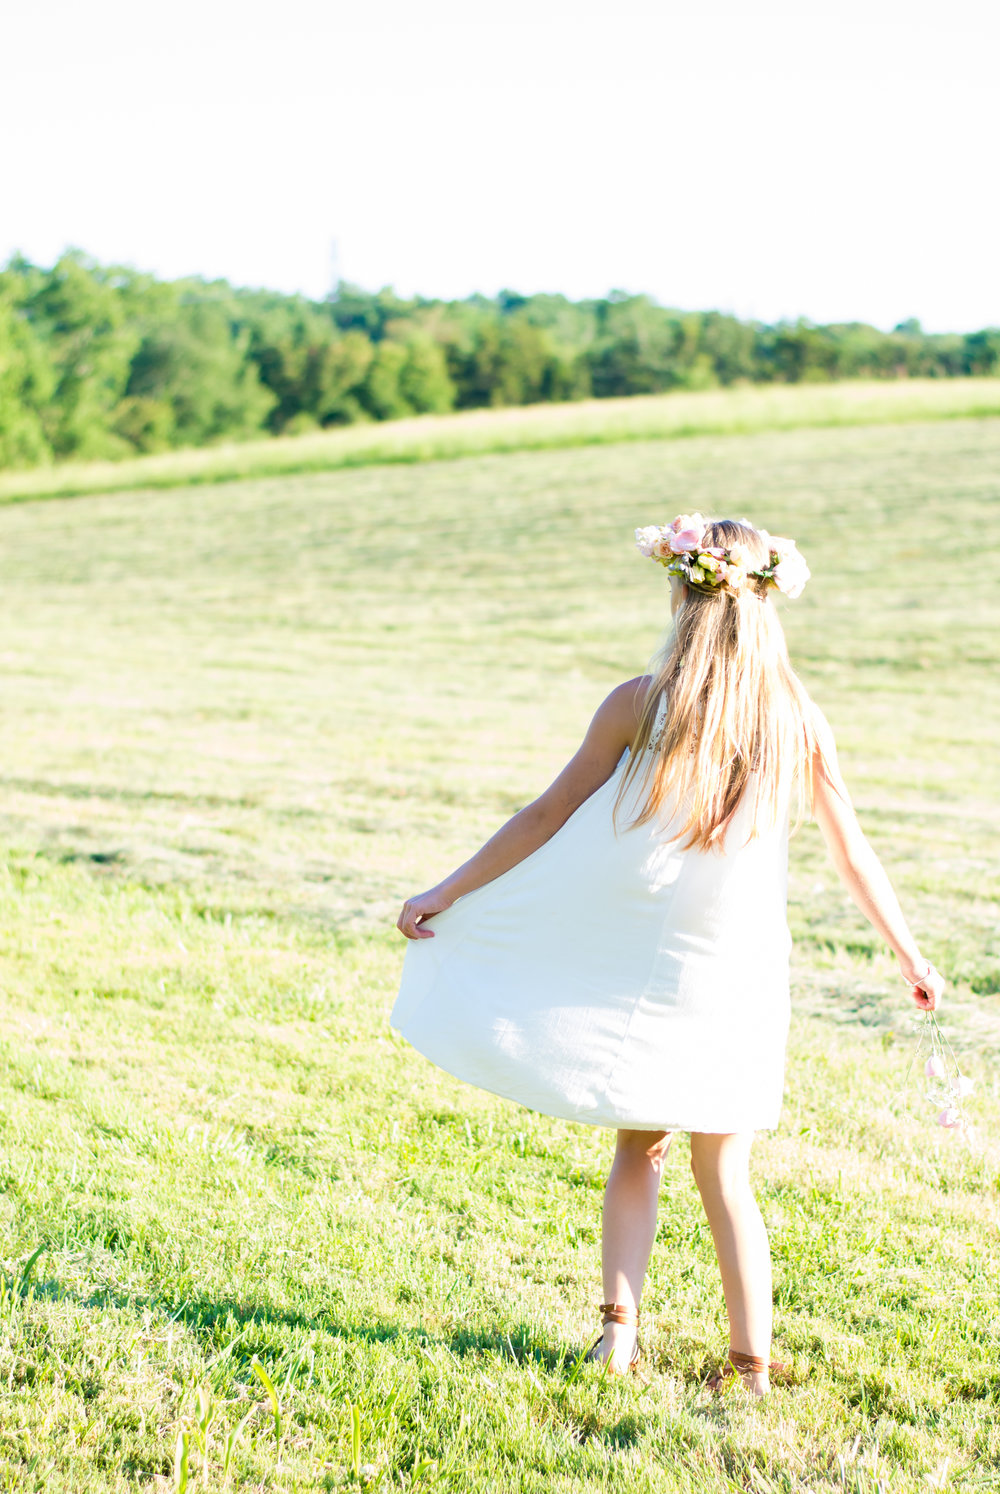 Vintage Garden Birthday Party Girl Frolicking in the Open Field / photo by Honeysuckle Rose Photography - as seen on www.GiggleHearts.com